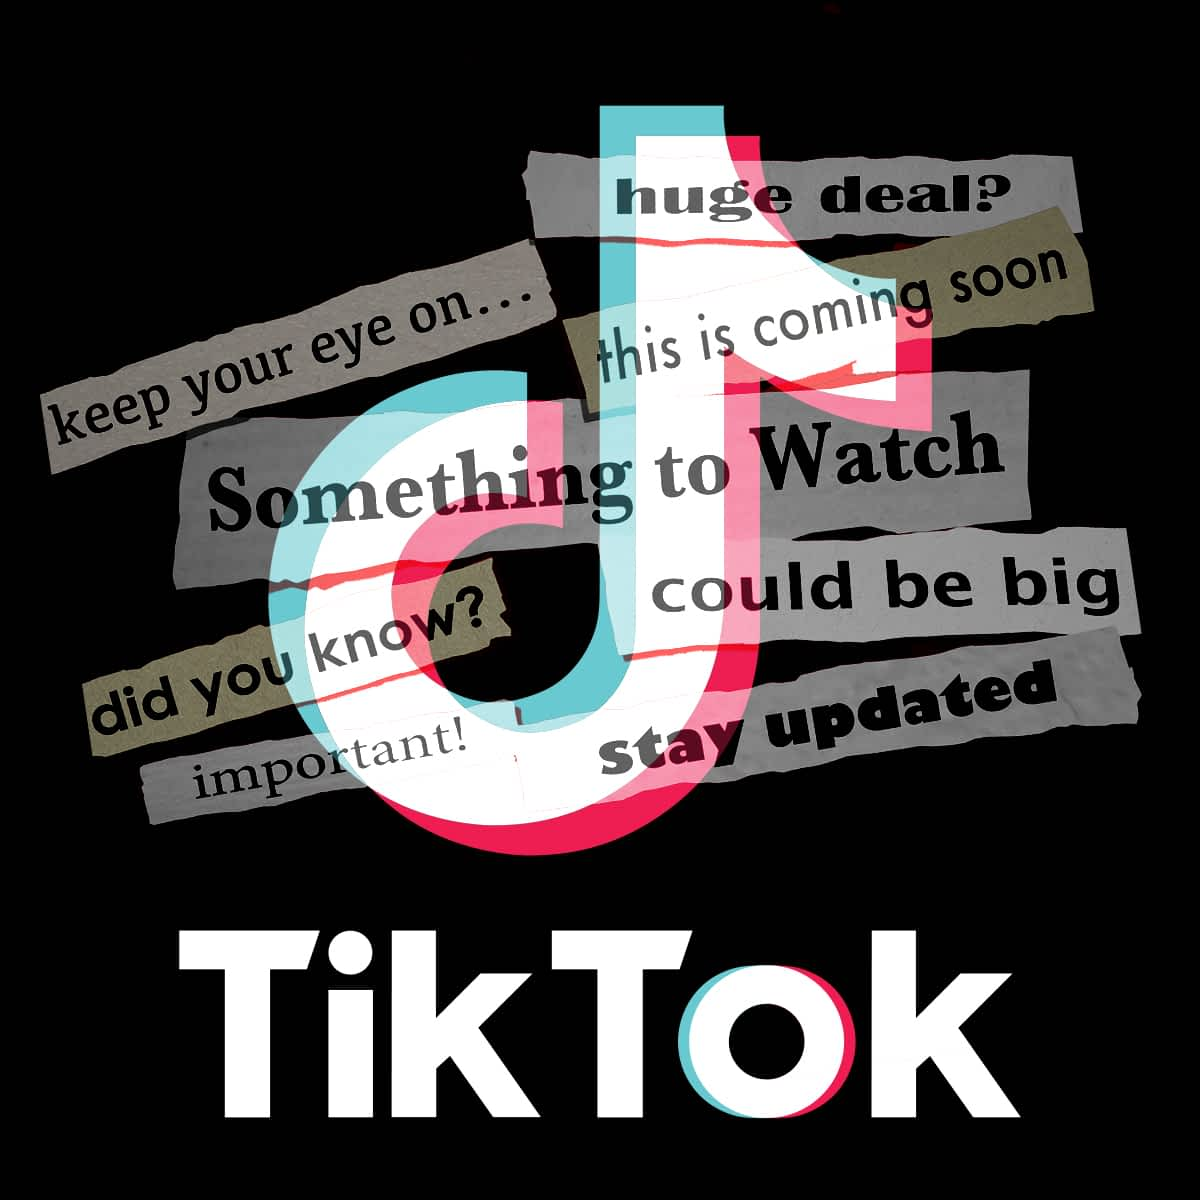 Image Of The Tik Tok Logo With Text Overlayed On Top